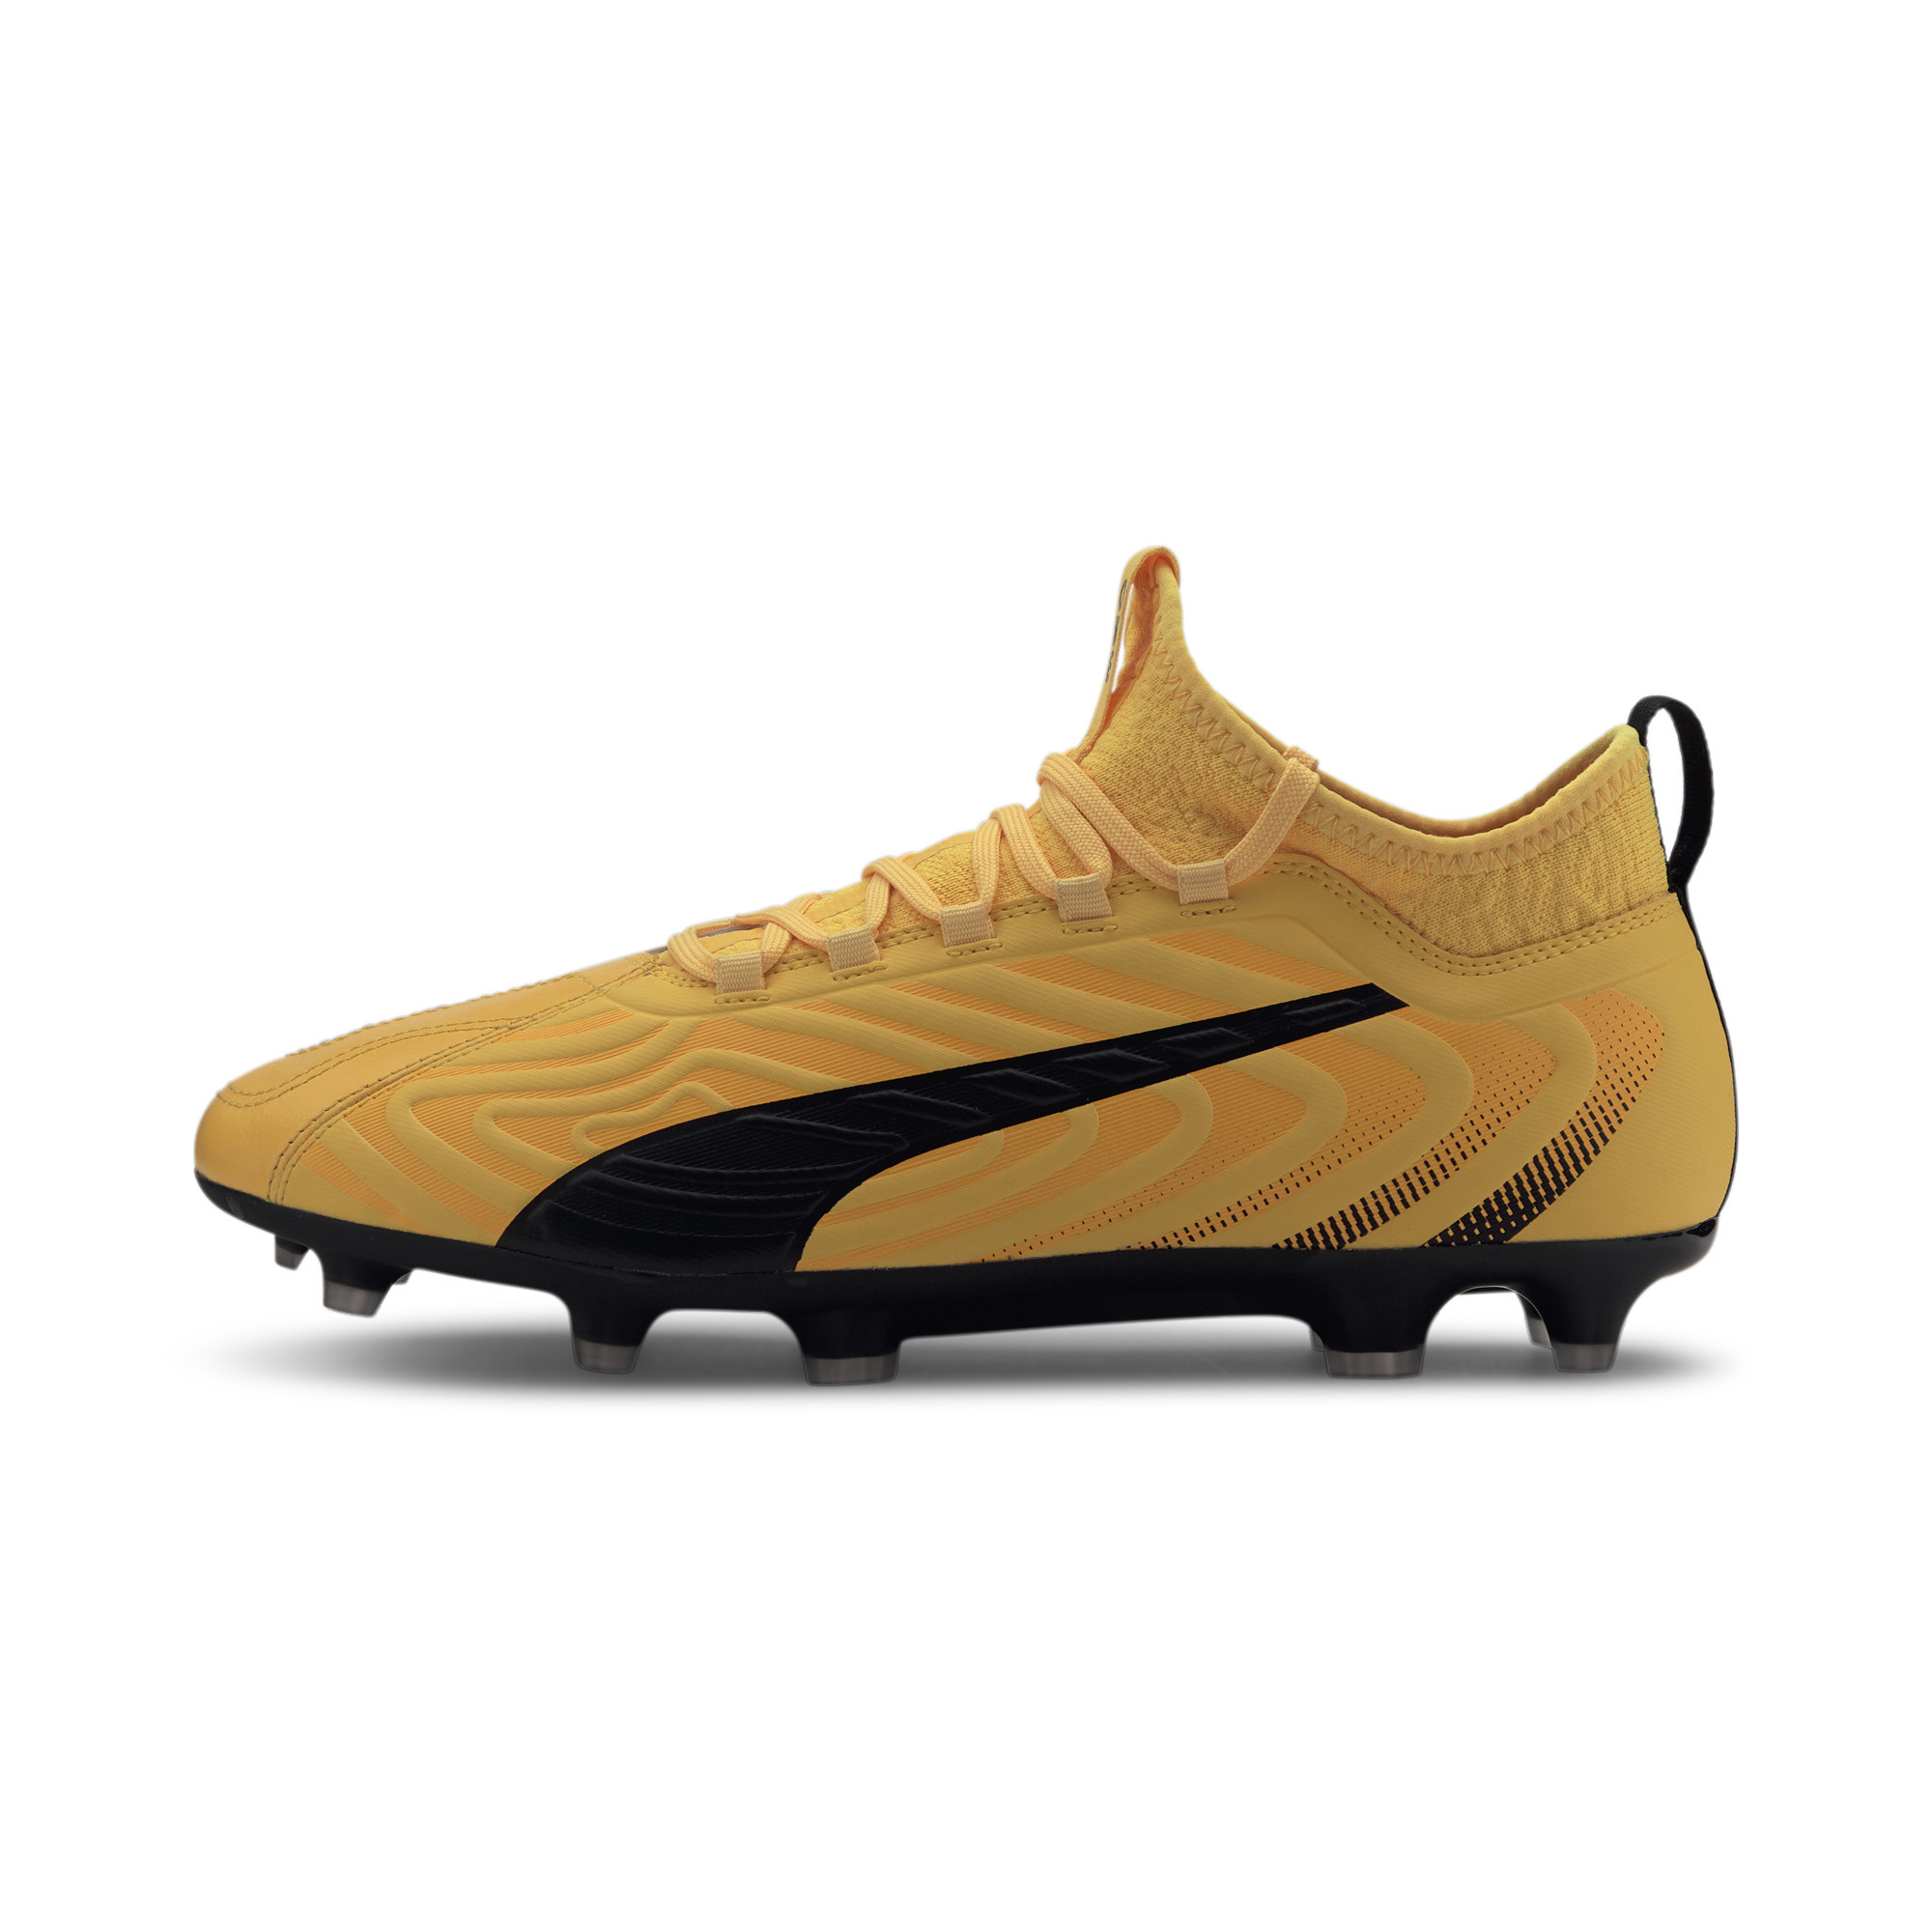 PUMA ONE 20.3 FGAG Men's Football Boots